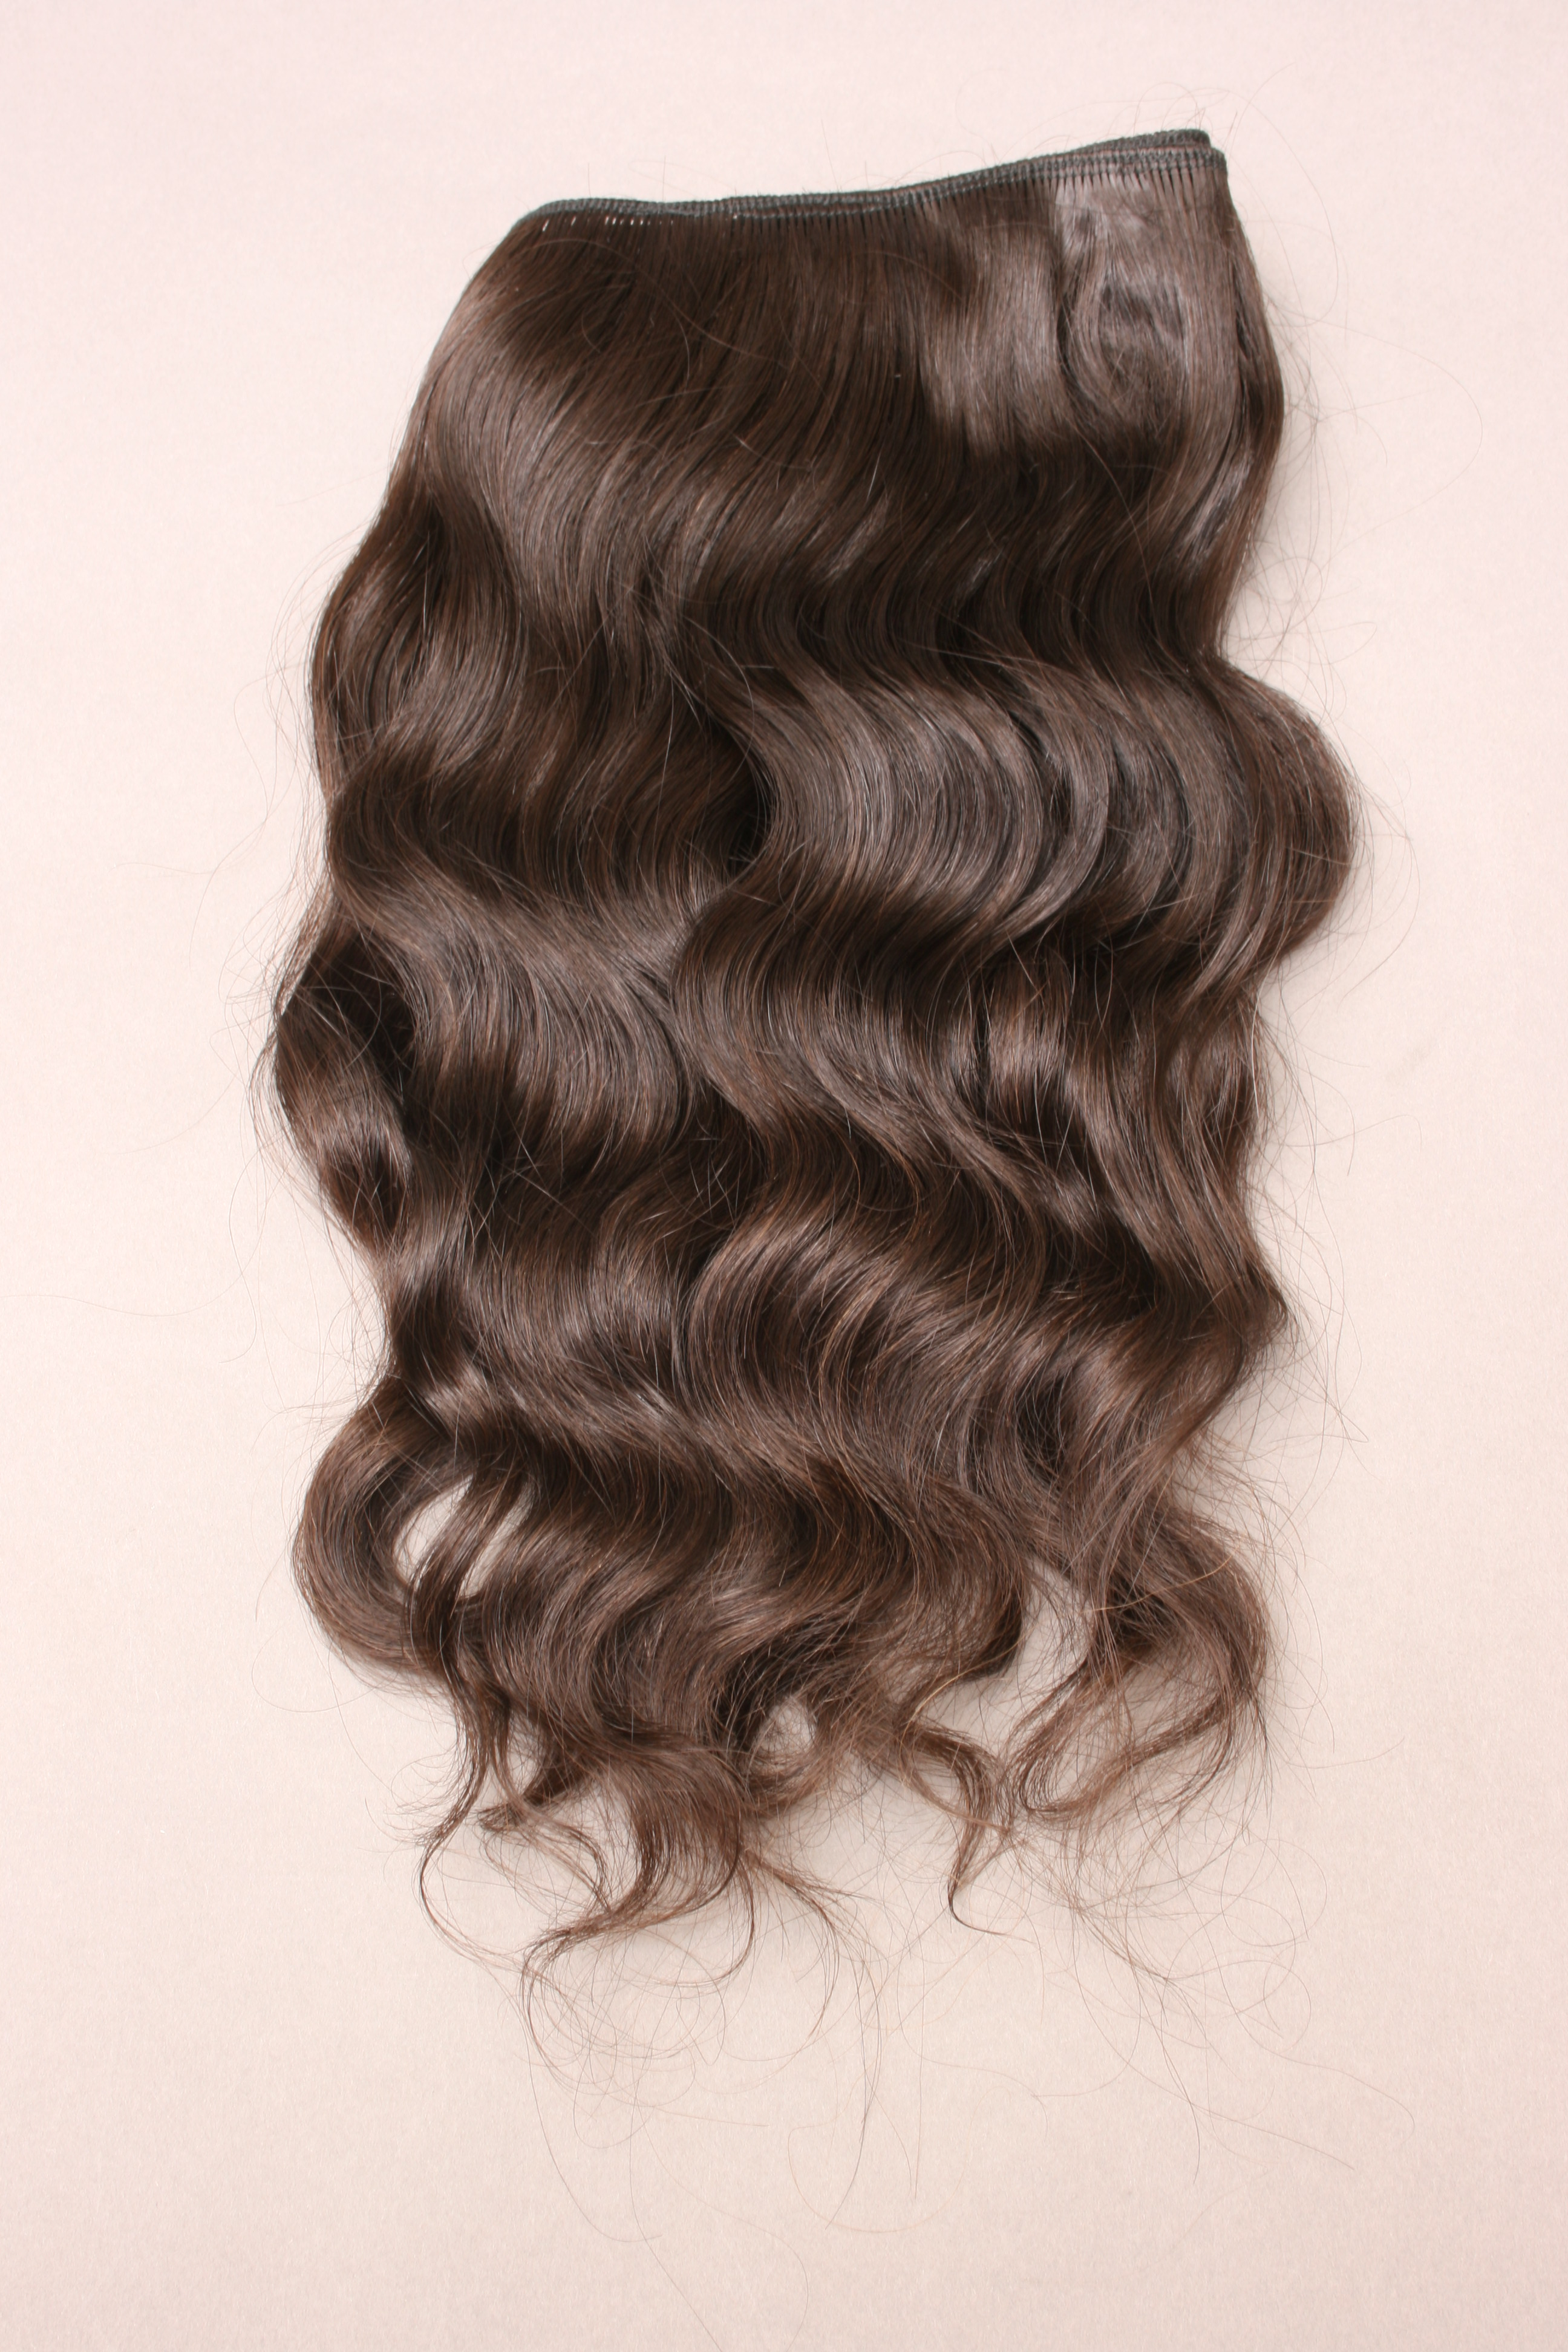 Indian - All Natural Wavy Signature Hair